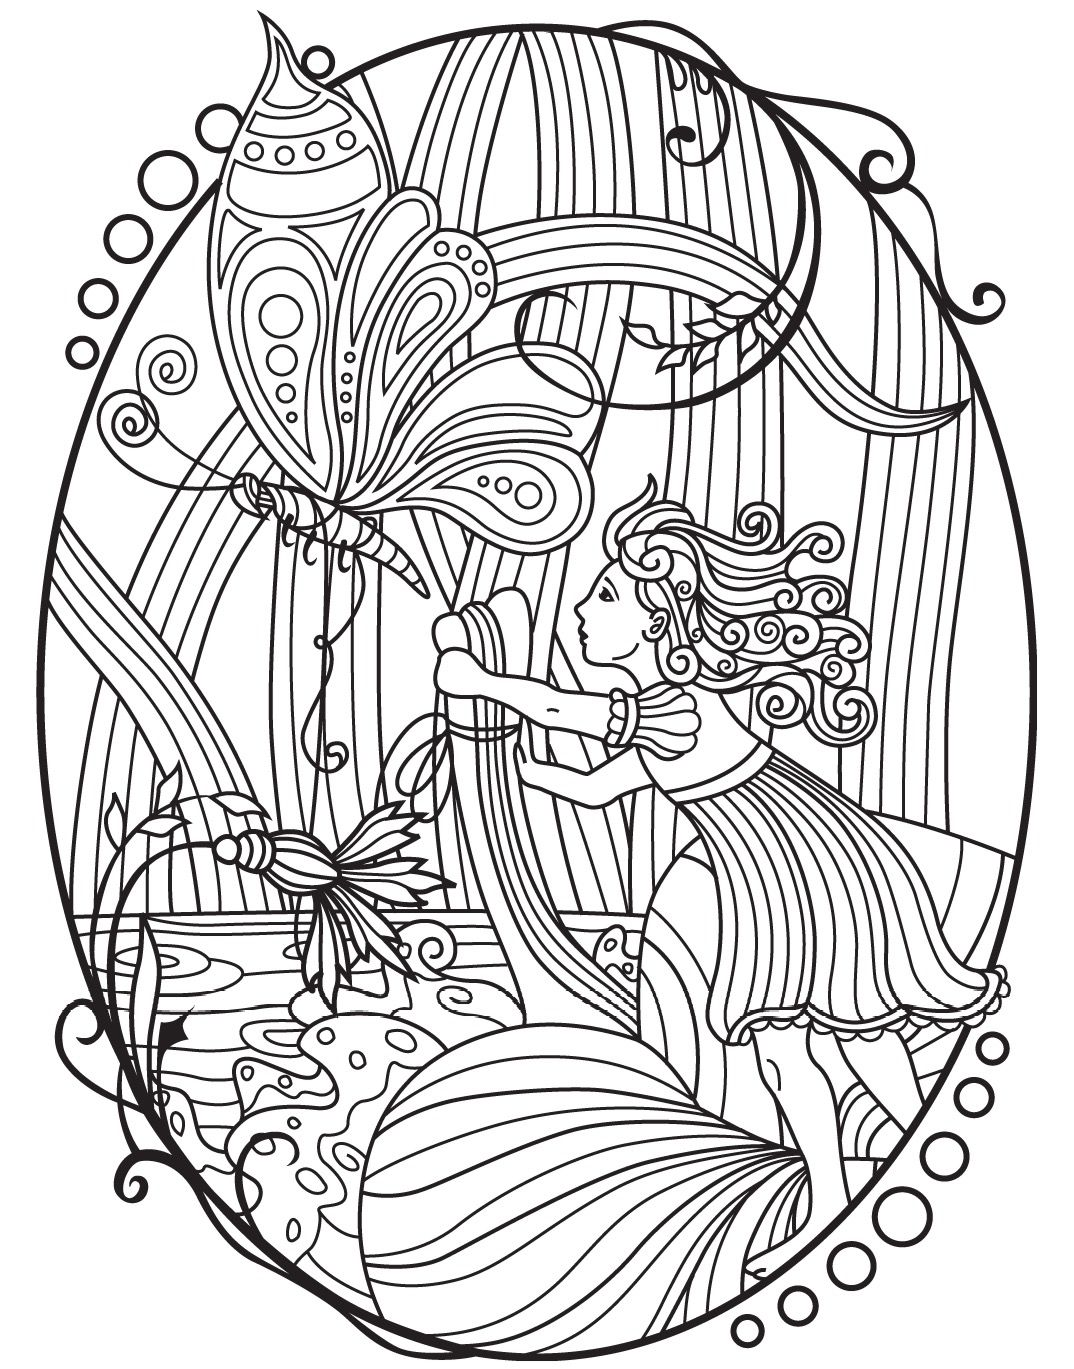 Fairytales Colorish coloring book app for adults by GoodSoftTech